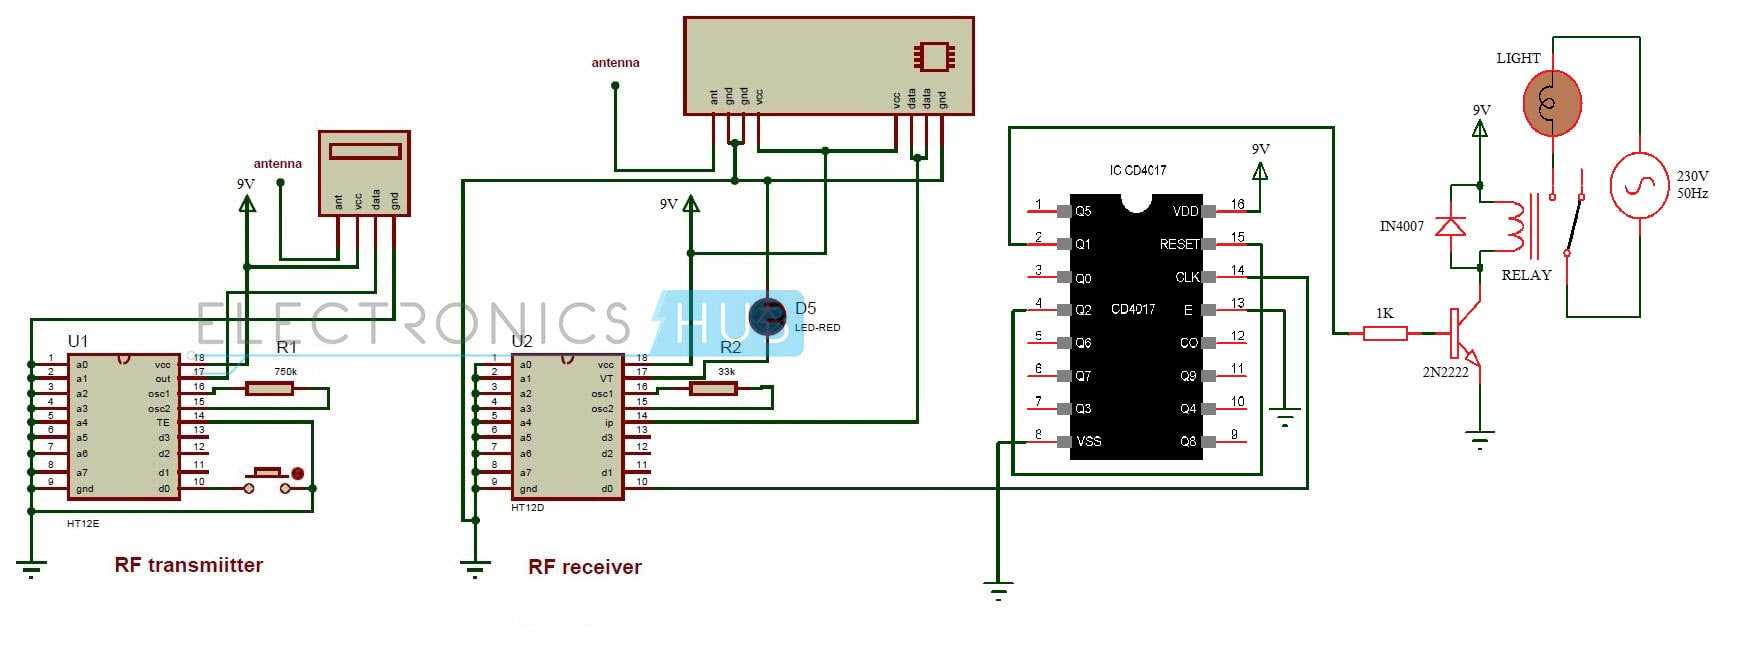 RF Remote Control Circuit for Home Appliances Circuit Diagram